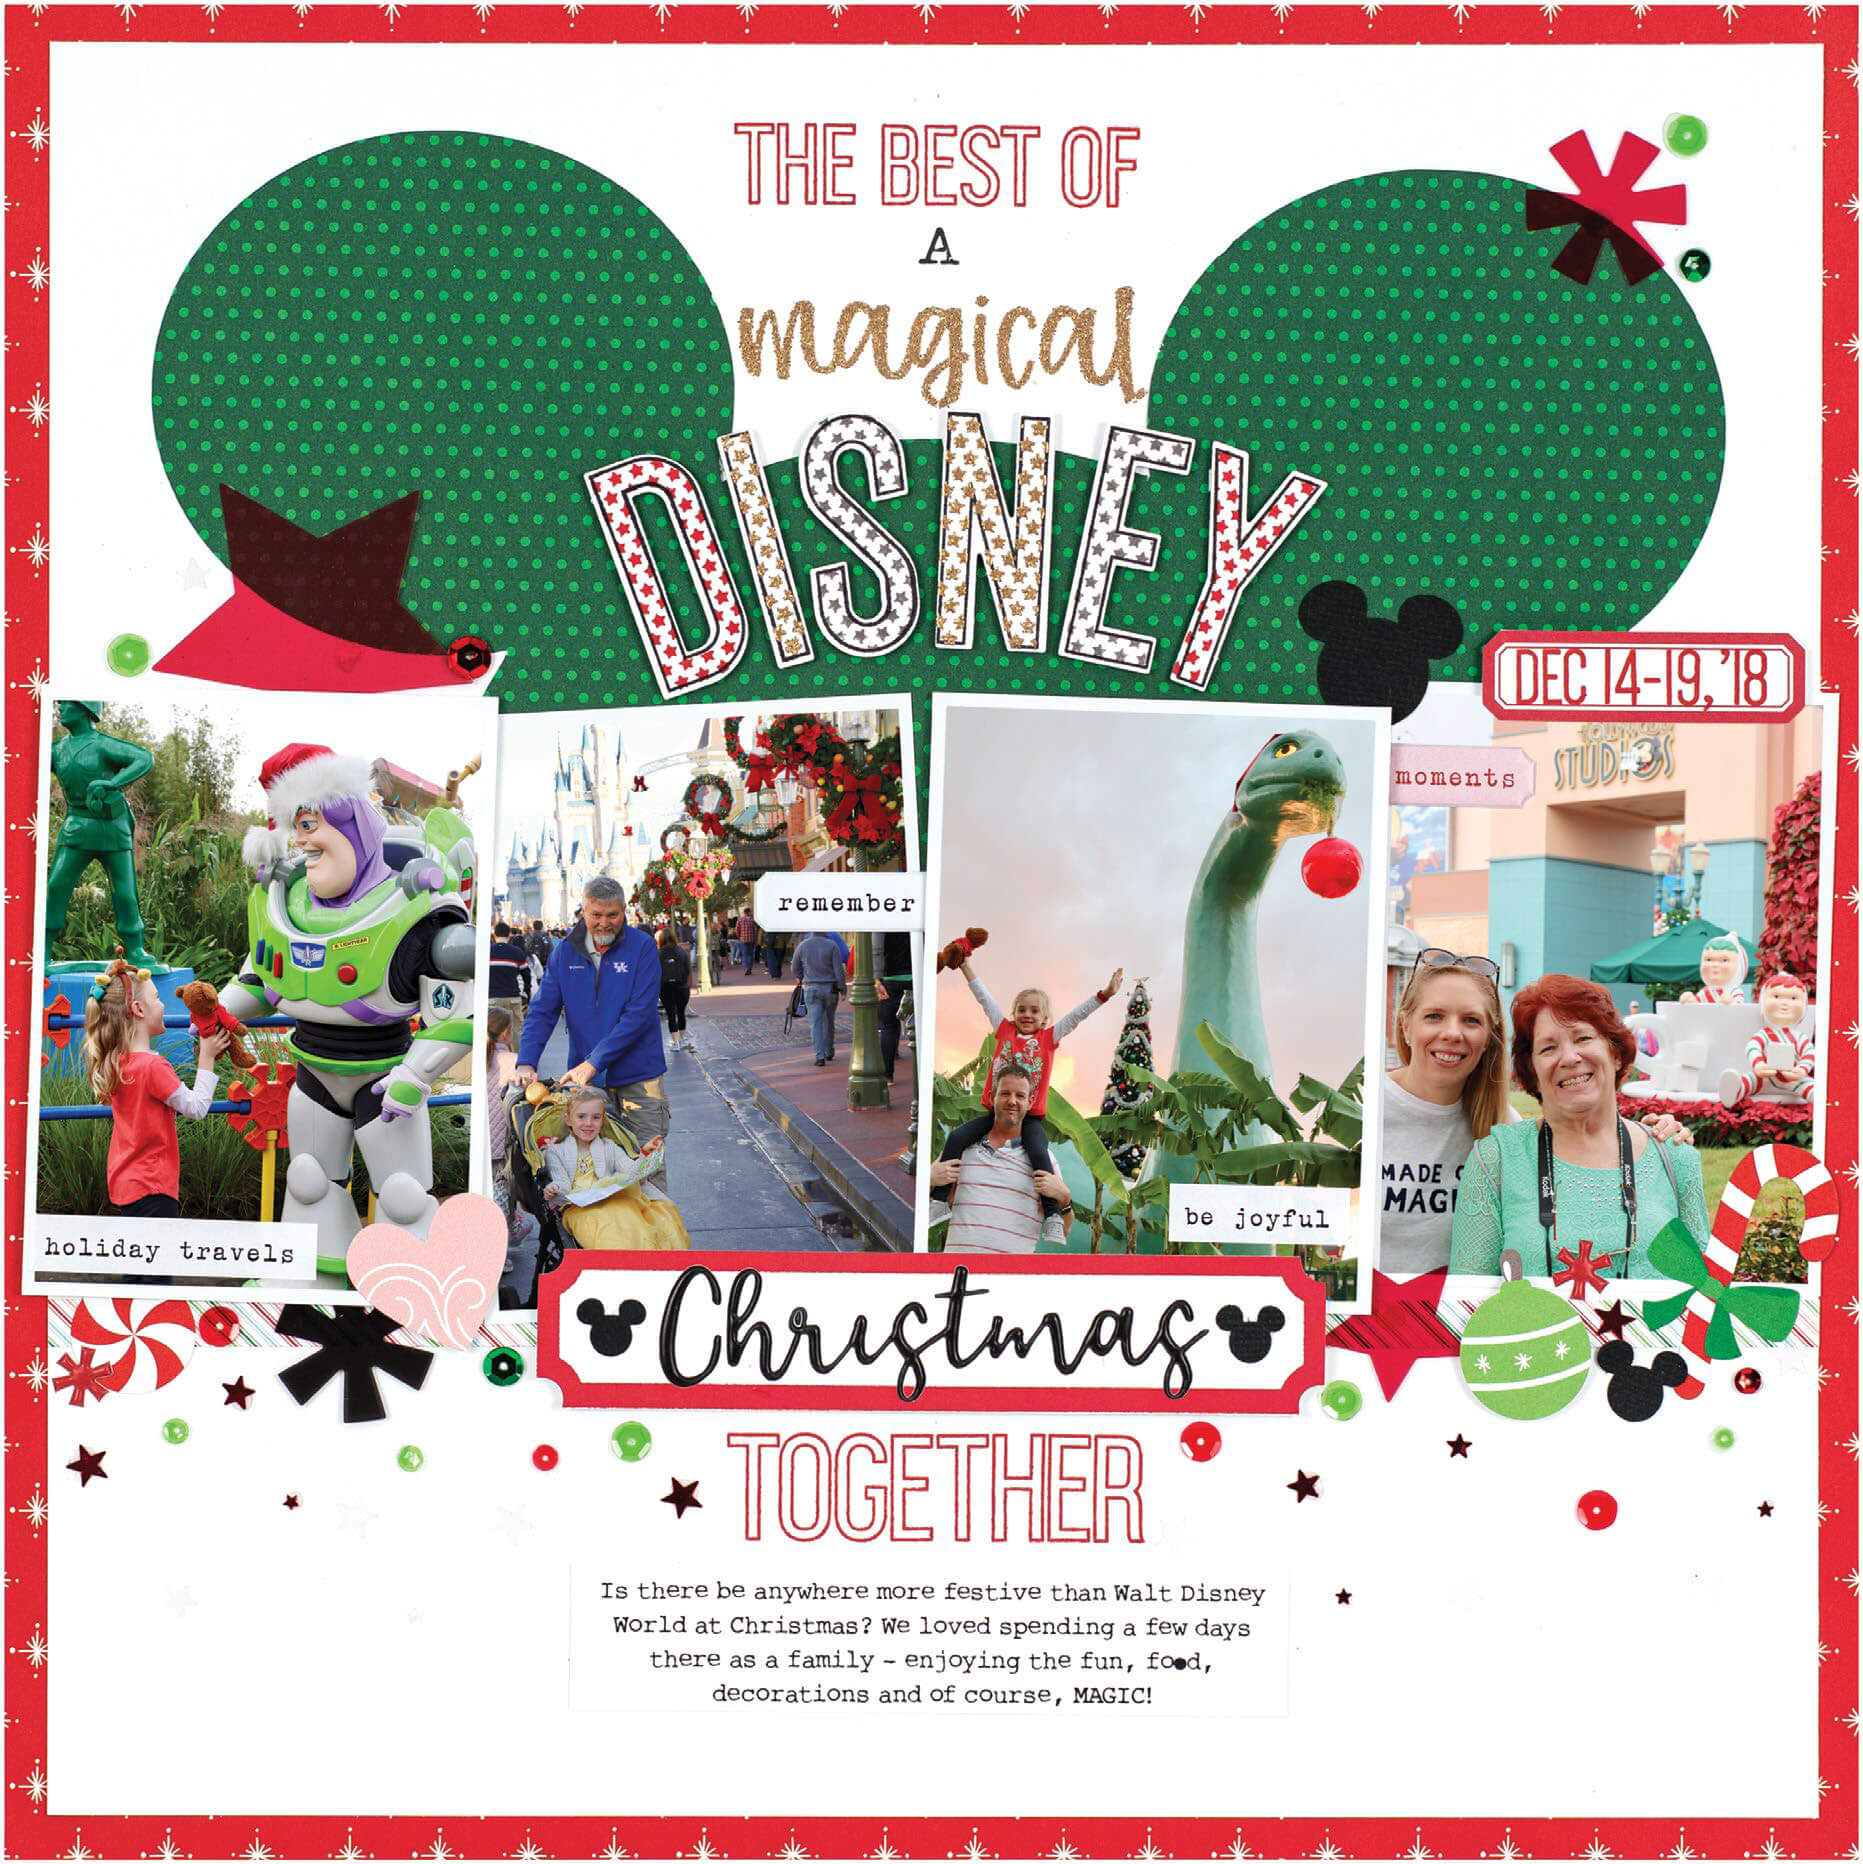 Scrapbook & Cards Today - Winter 2019 - Magical Disney Christmas Together layout by Meghann Andrew